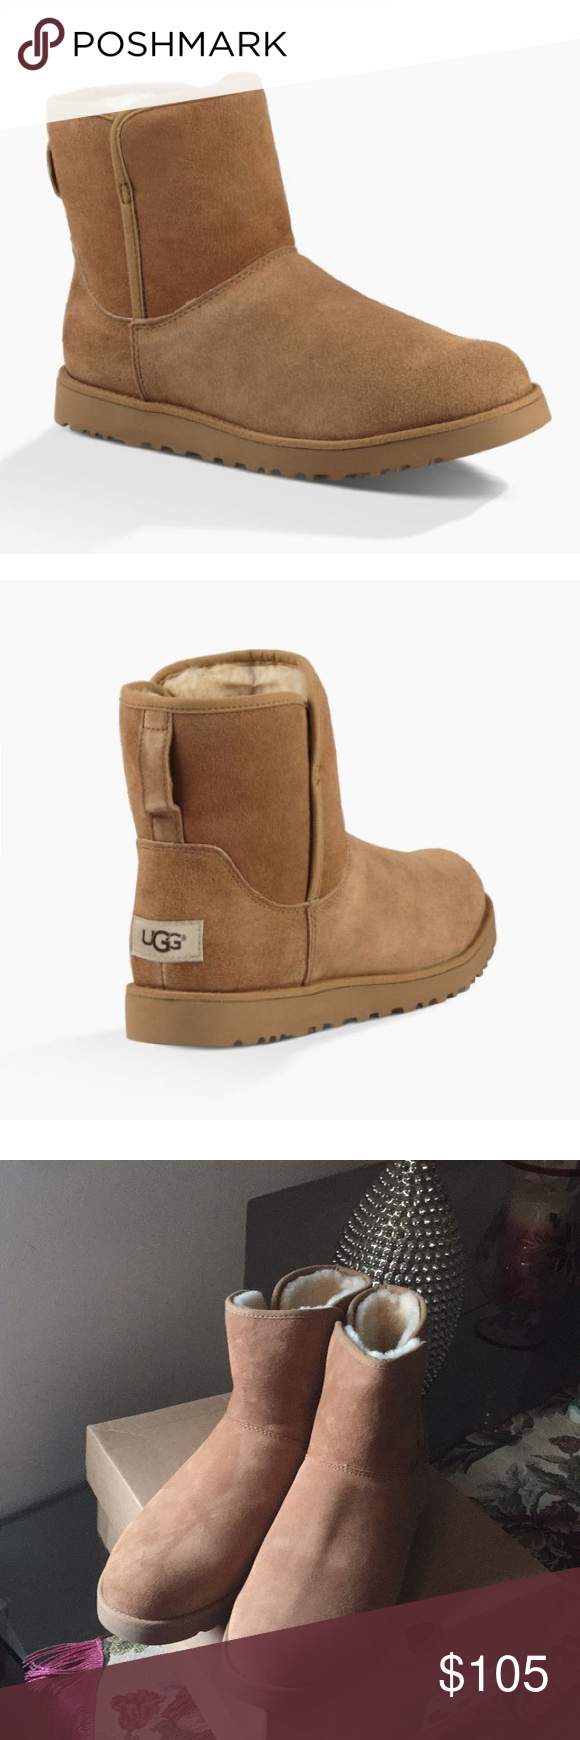 34bd1dd83a9 NEW UGG CORY CHESTNUT Water Resistant💦 Model: 1013437 Slim and ...